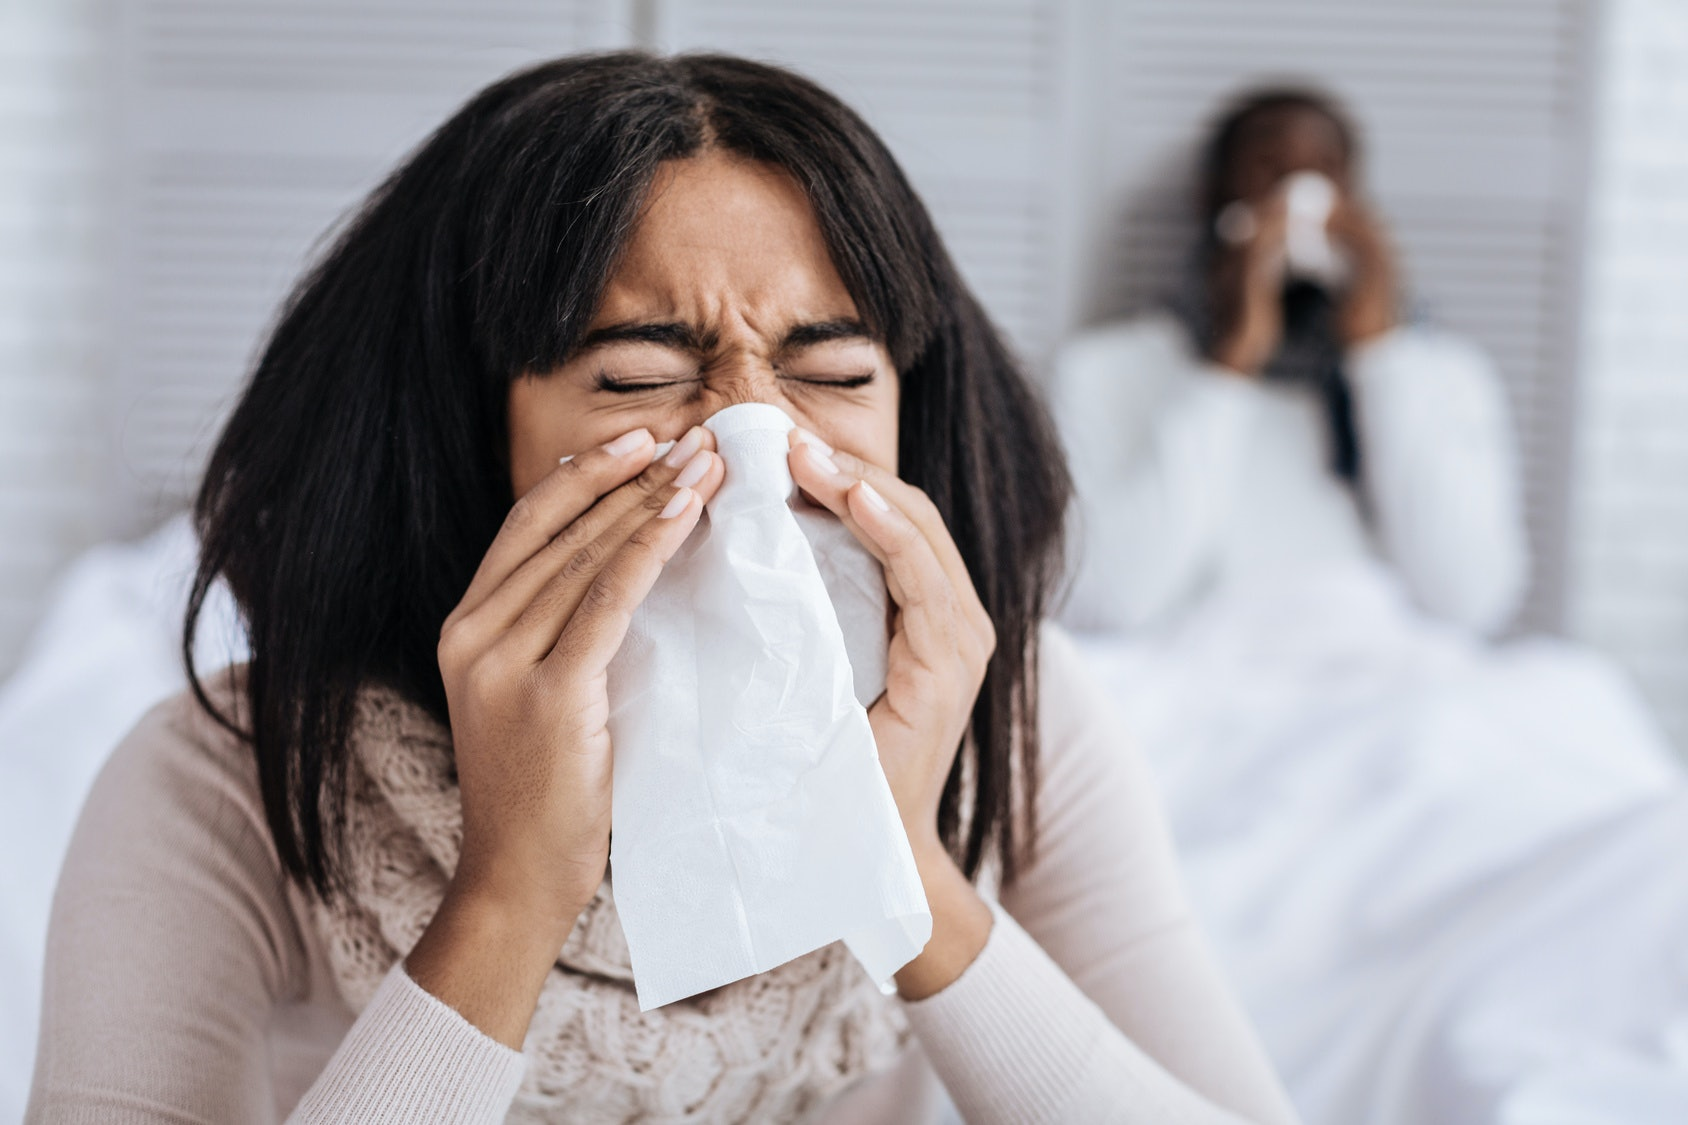 Oral sex when your partner has flu